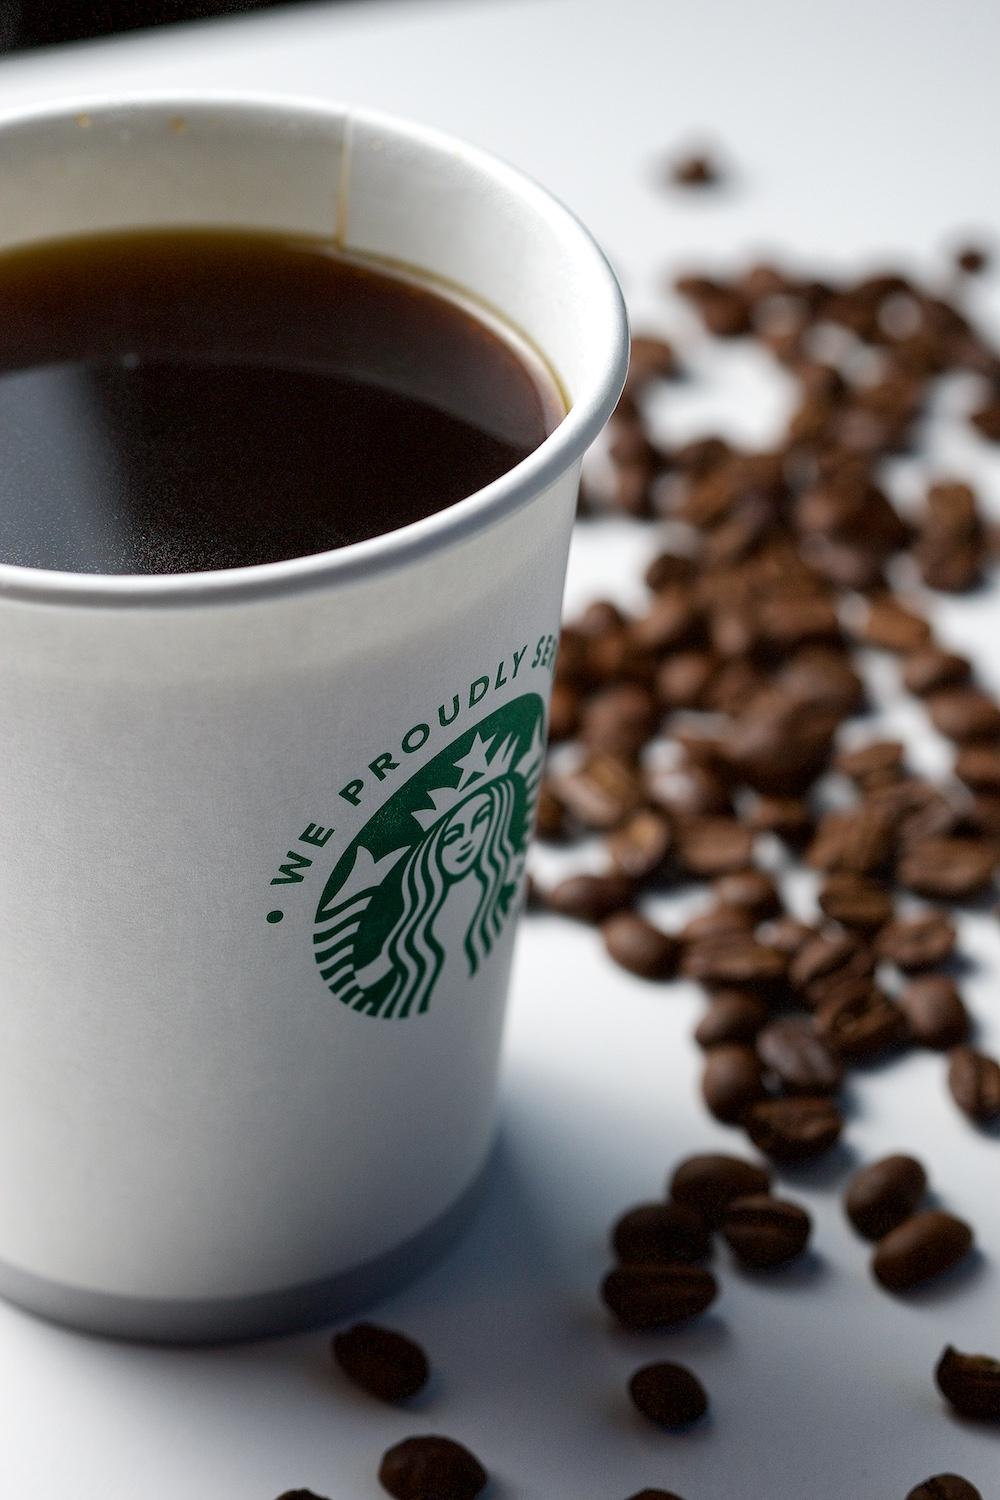 About 2,200 cups of Starbucks coffee are consumed at OptionsHouse in a typical month.